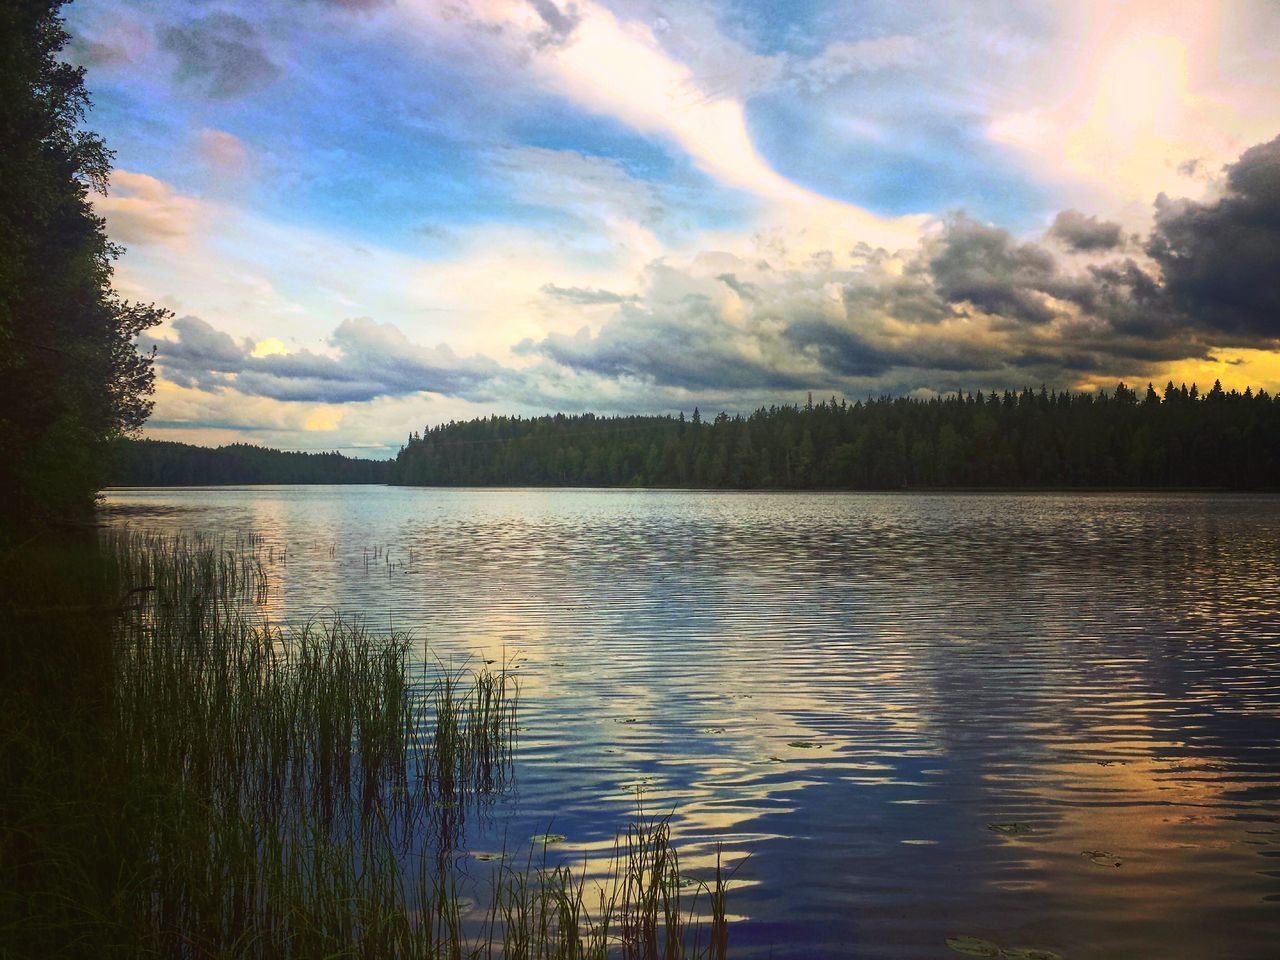 Summer evening Lake Reflection Water Nature Sky Outdoors Landscape_photography Naturebeauty Finnish Nature Photography Nature Photography Photographer Colourful Day Naturelovers Beauty In Nature Summertime Landscape Cloudscape Summer Memories... Colorful Lake View Dramatic Sky Daytime Evening Sky